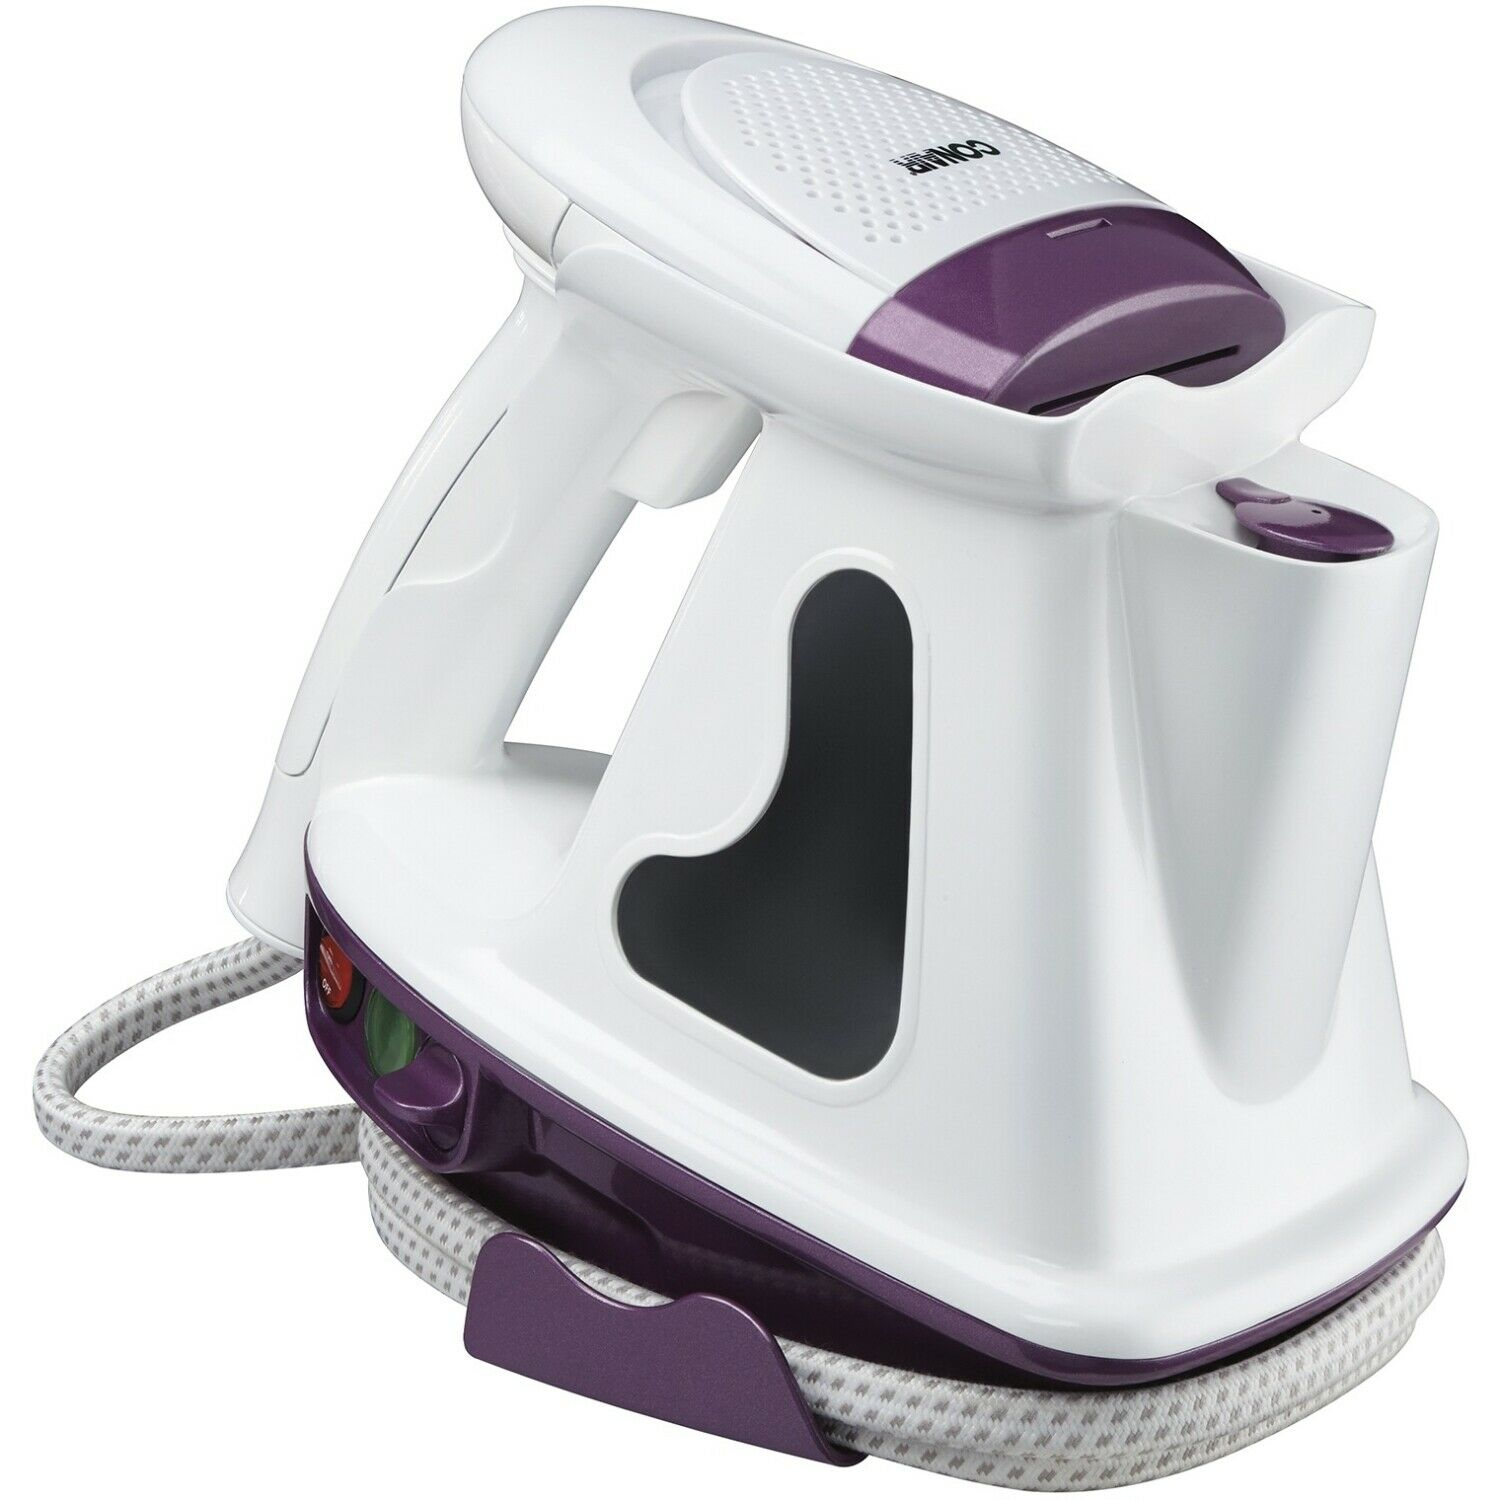 Conair Steamer Handheld Portable Garment Clothes Steam Iron